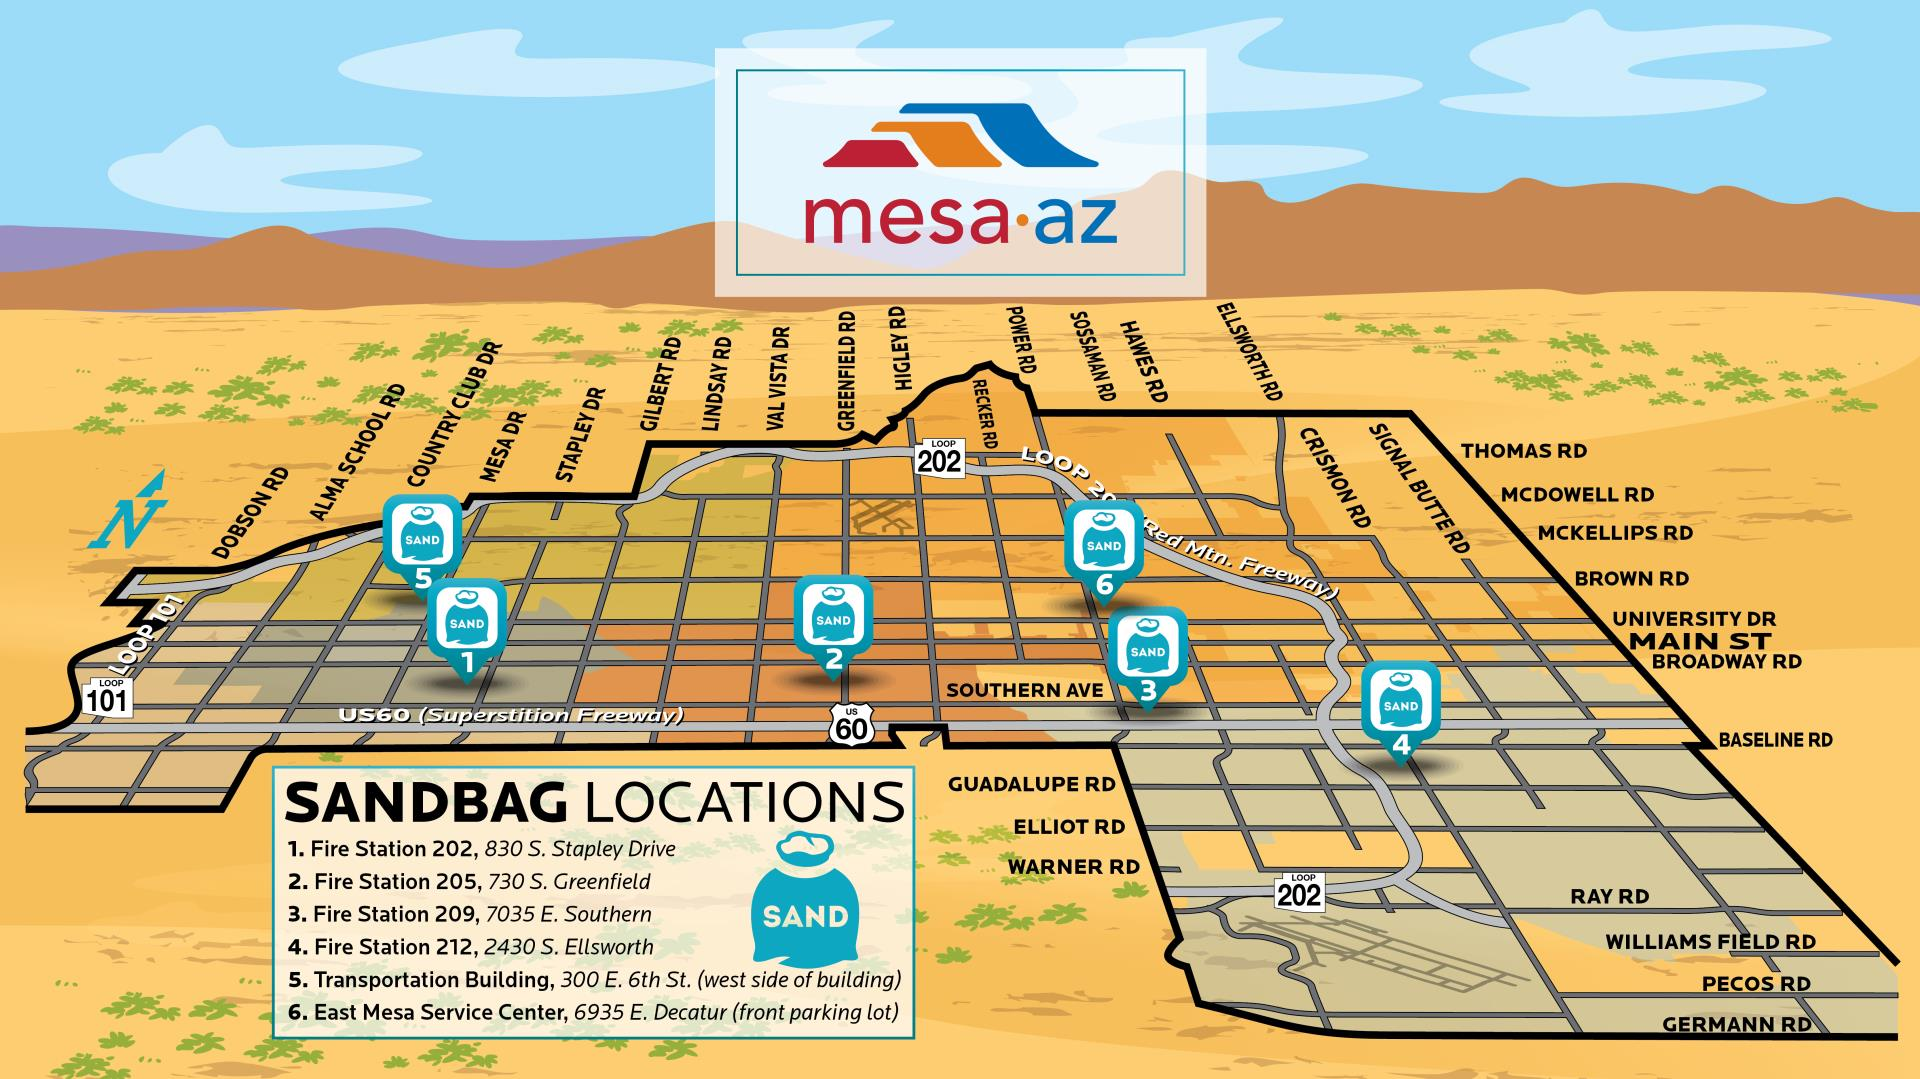 Sandbag location map